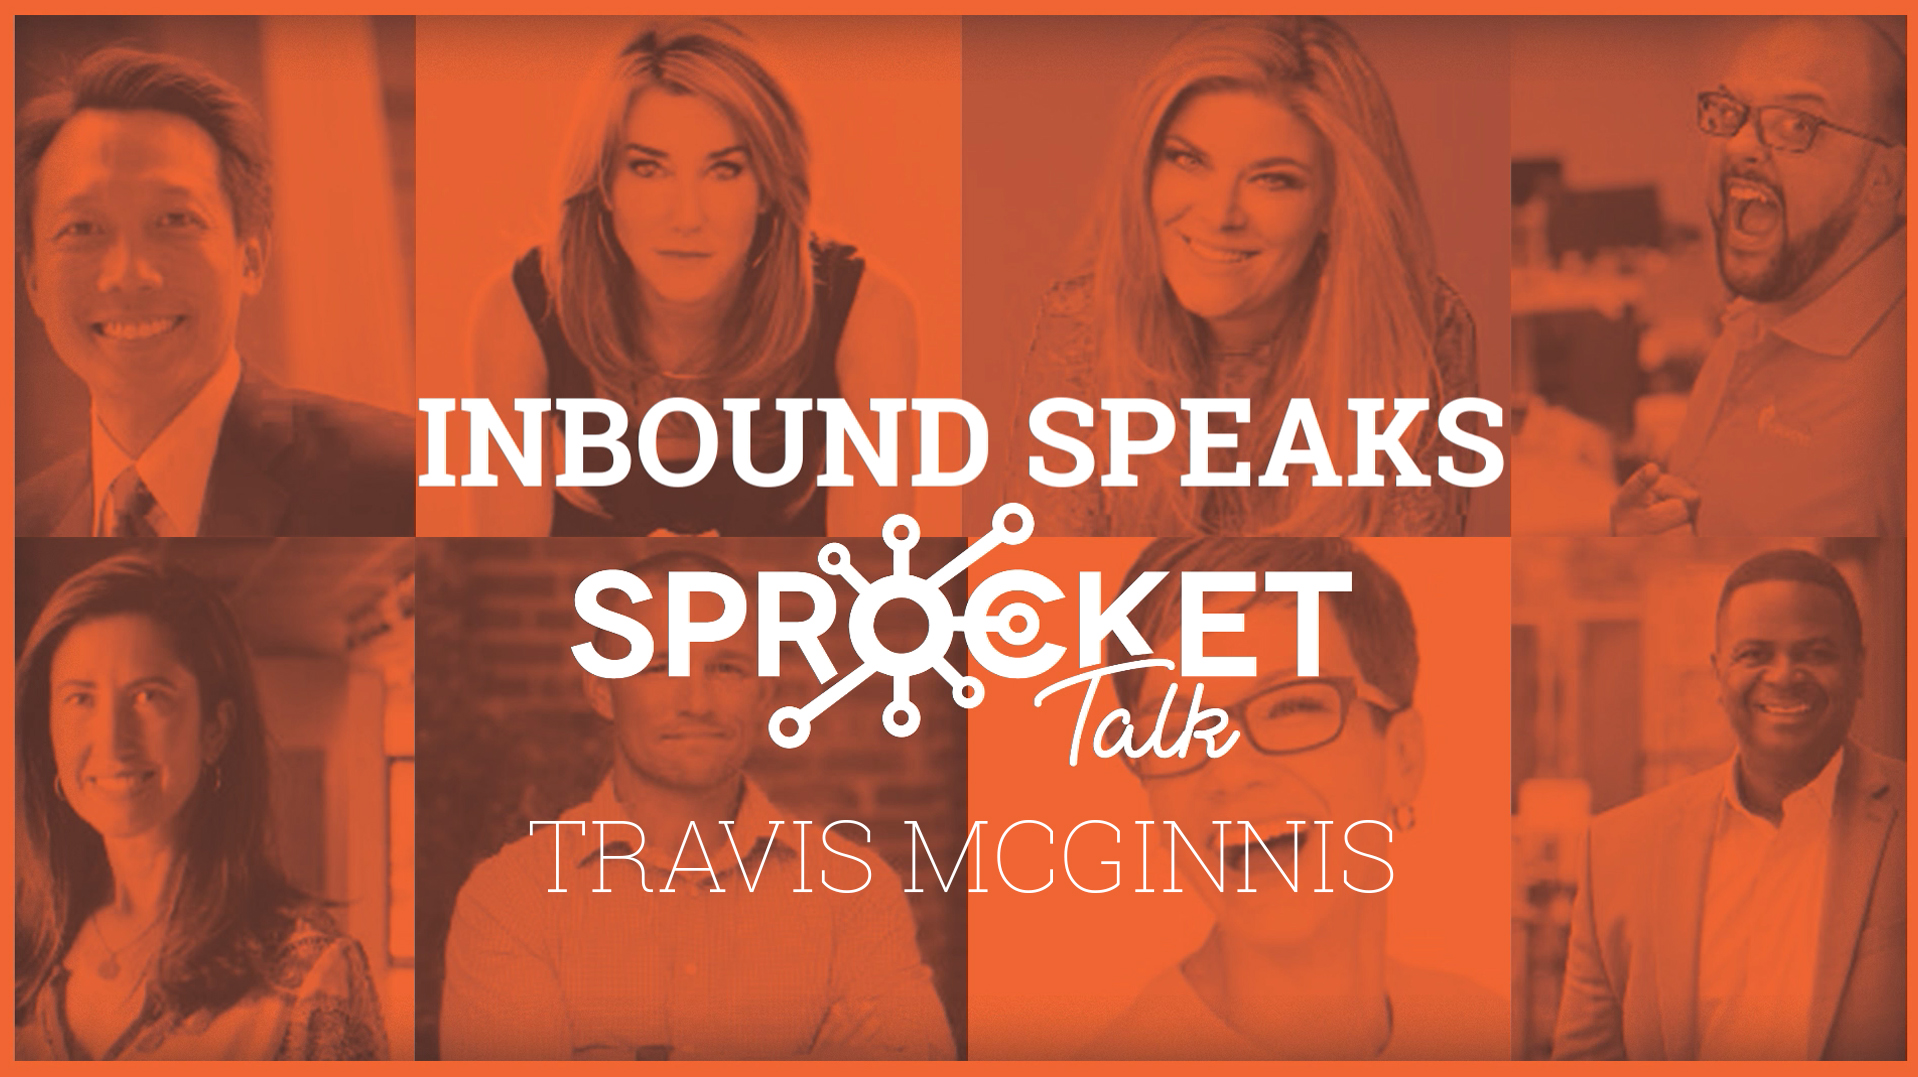 Travis McGinnis What's In a CTA? Tips, Tricks, & Statistics #Inbound19